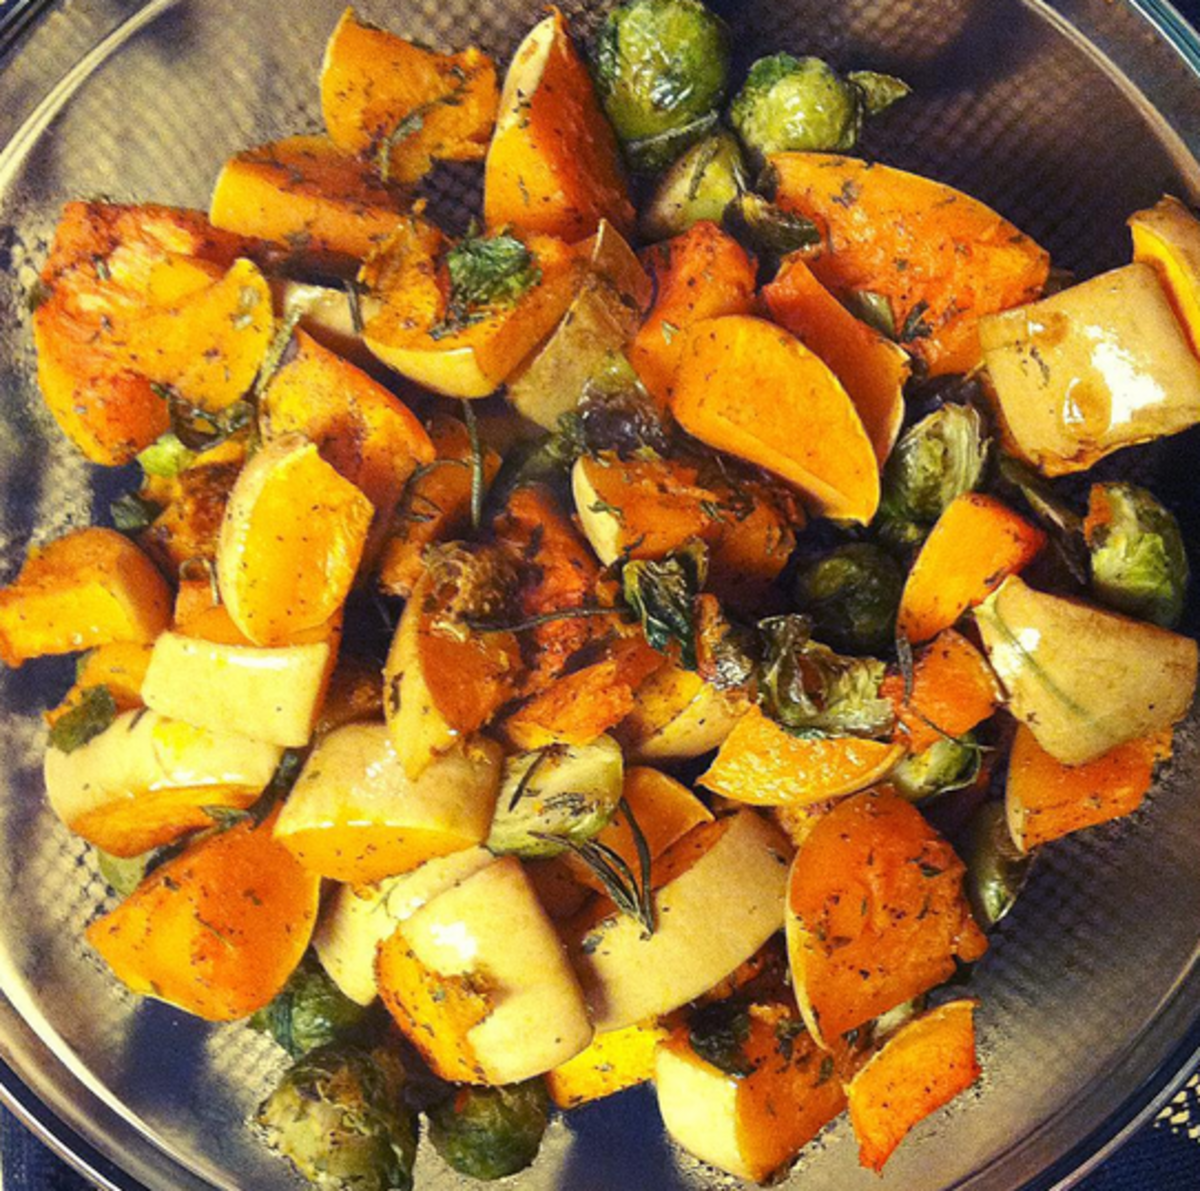 Brussels sprouts, squash